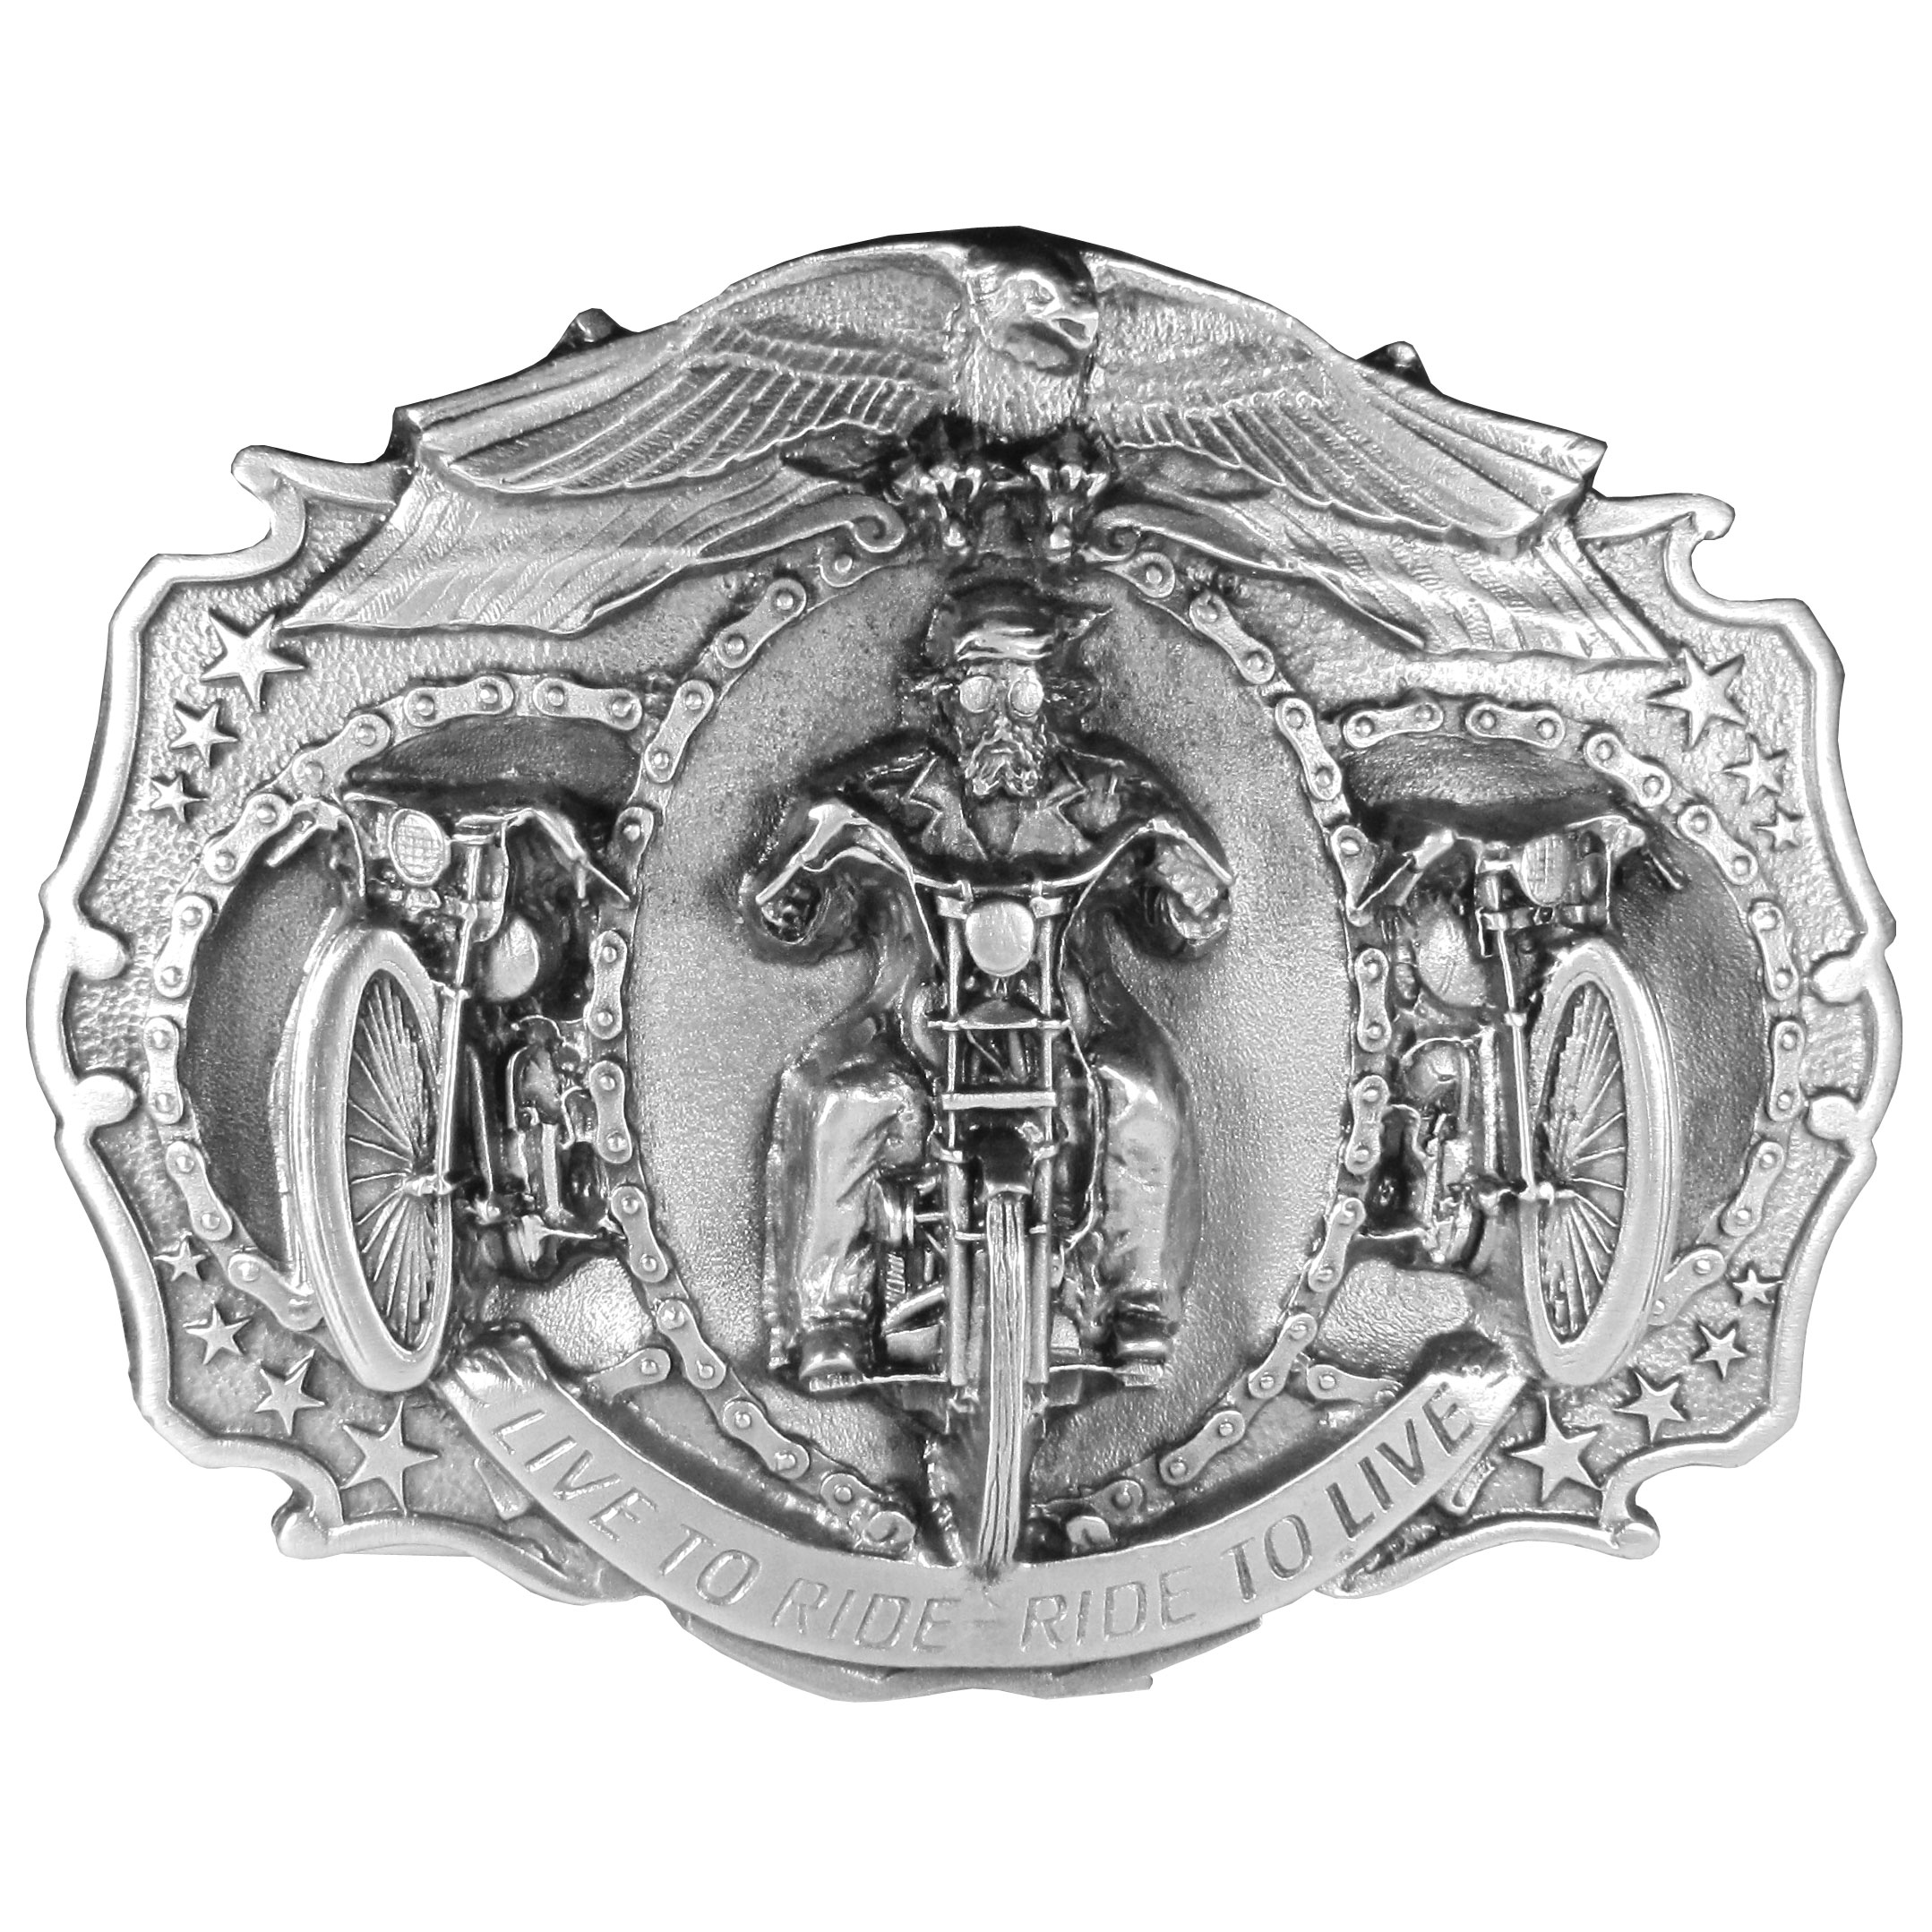 "Live to Ride Antiqued Belt Buckle - ""This large belt buckle features a man on a motorcycle with """"Live to Ride, Ride to Live"""" below.  There is also an eagle perched on top of a motorcycle chain, stars and two motorcycles on the side.  On the back are the words, """"Jammin' in the wind on a long straight stretch; kickin' it in the ass comin out of a tight curve; or maybe just a slow cruise on a balmy night...it's just a feeling you can only get on two wheels and there's nothin' else like it in the world.""""  Buckle measures 5-1/4"""" x 4""""."""